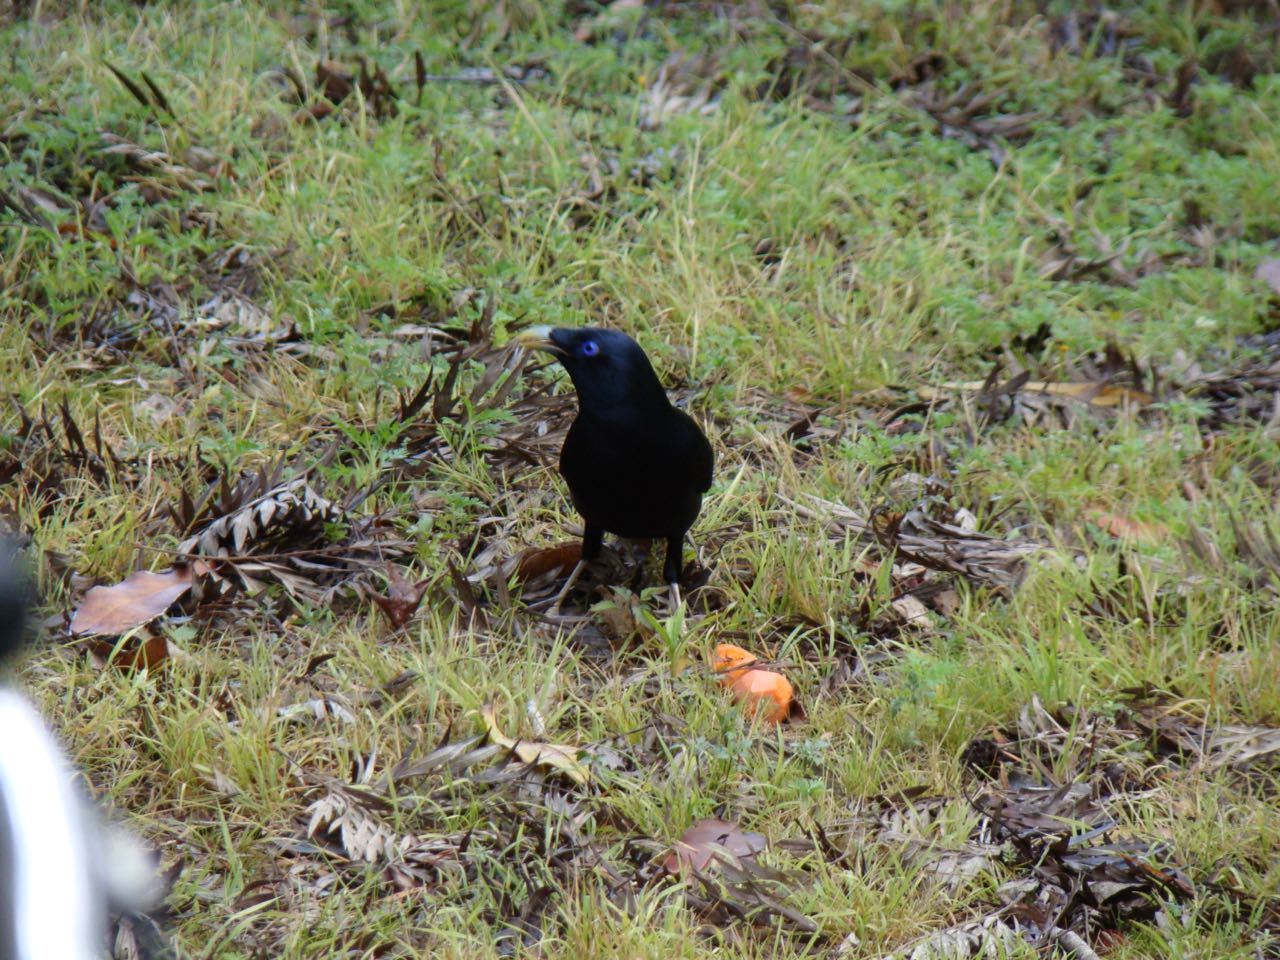 Satin Bowerbird again